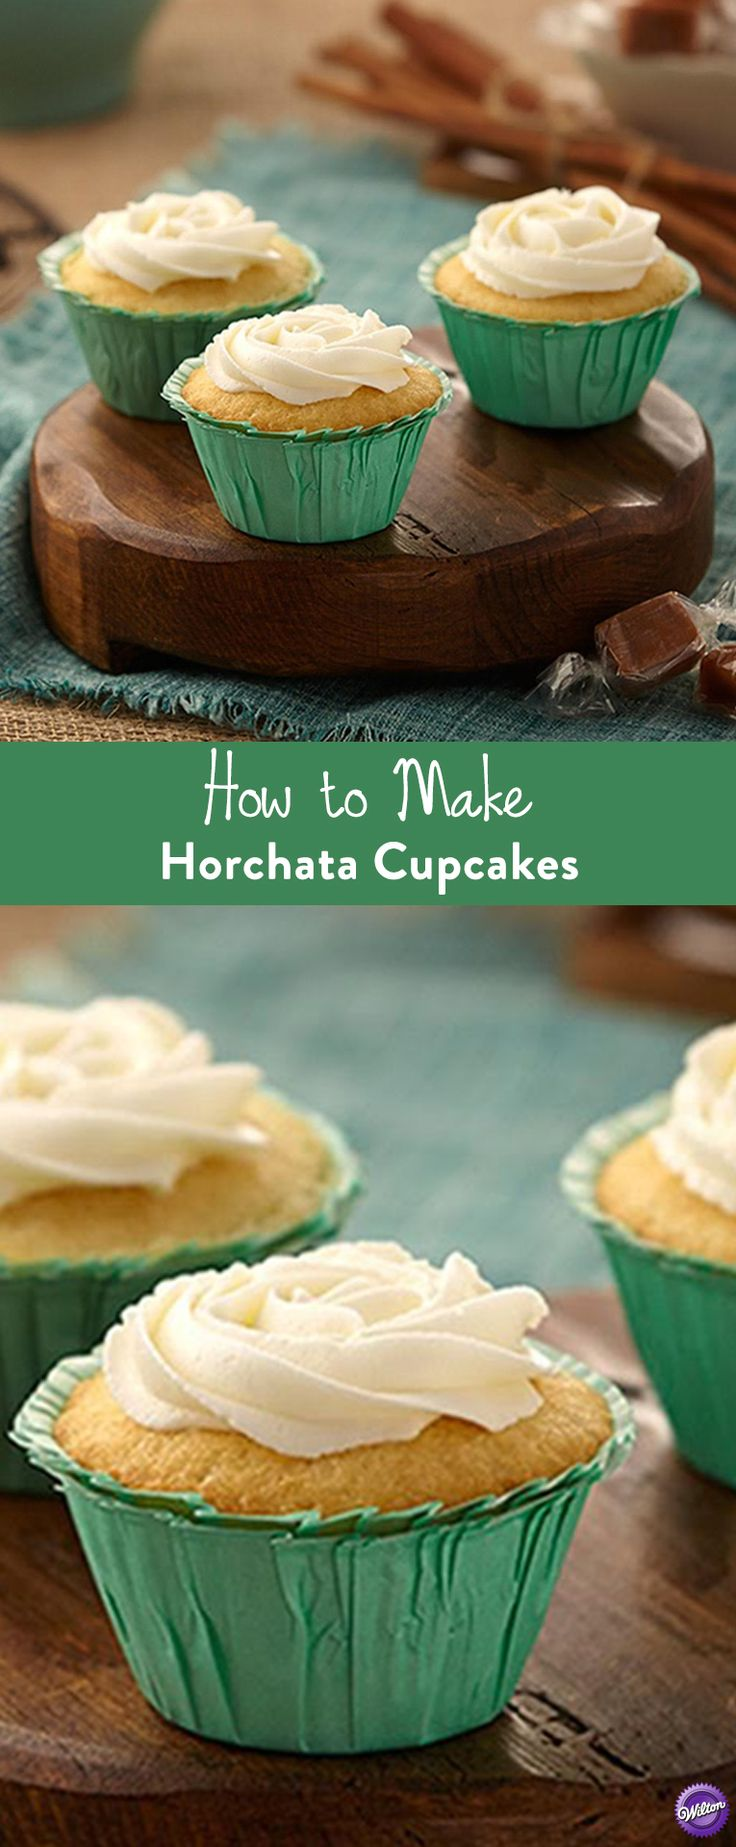 How To Make Horchata Cupcakes  If You Love The Taste Of Sweet And Creamy,